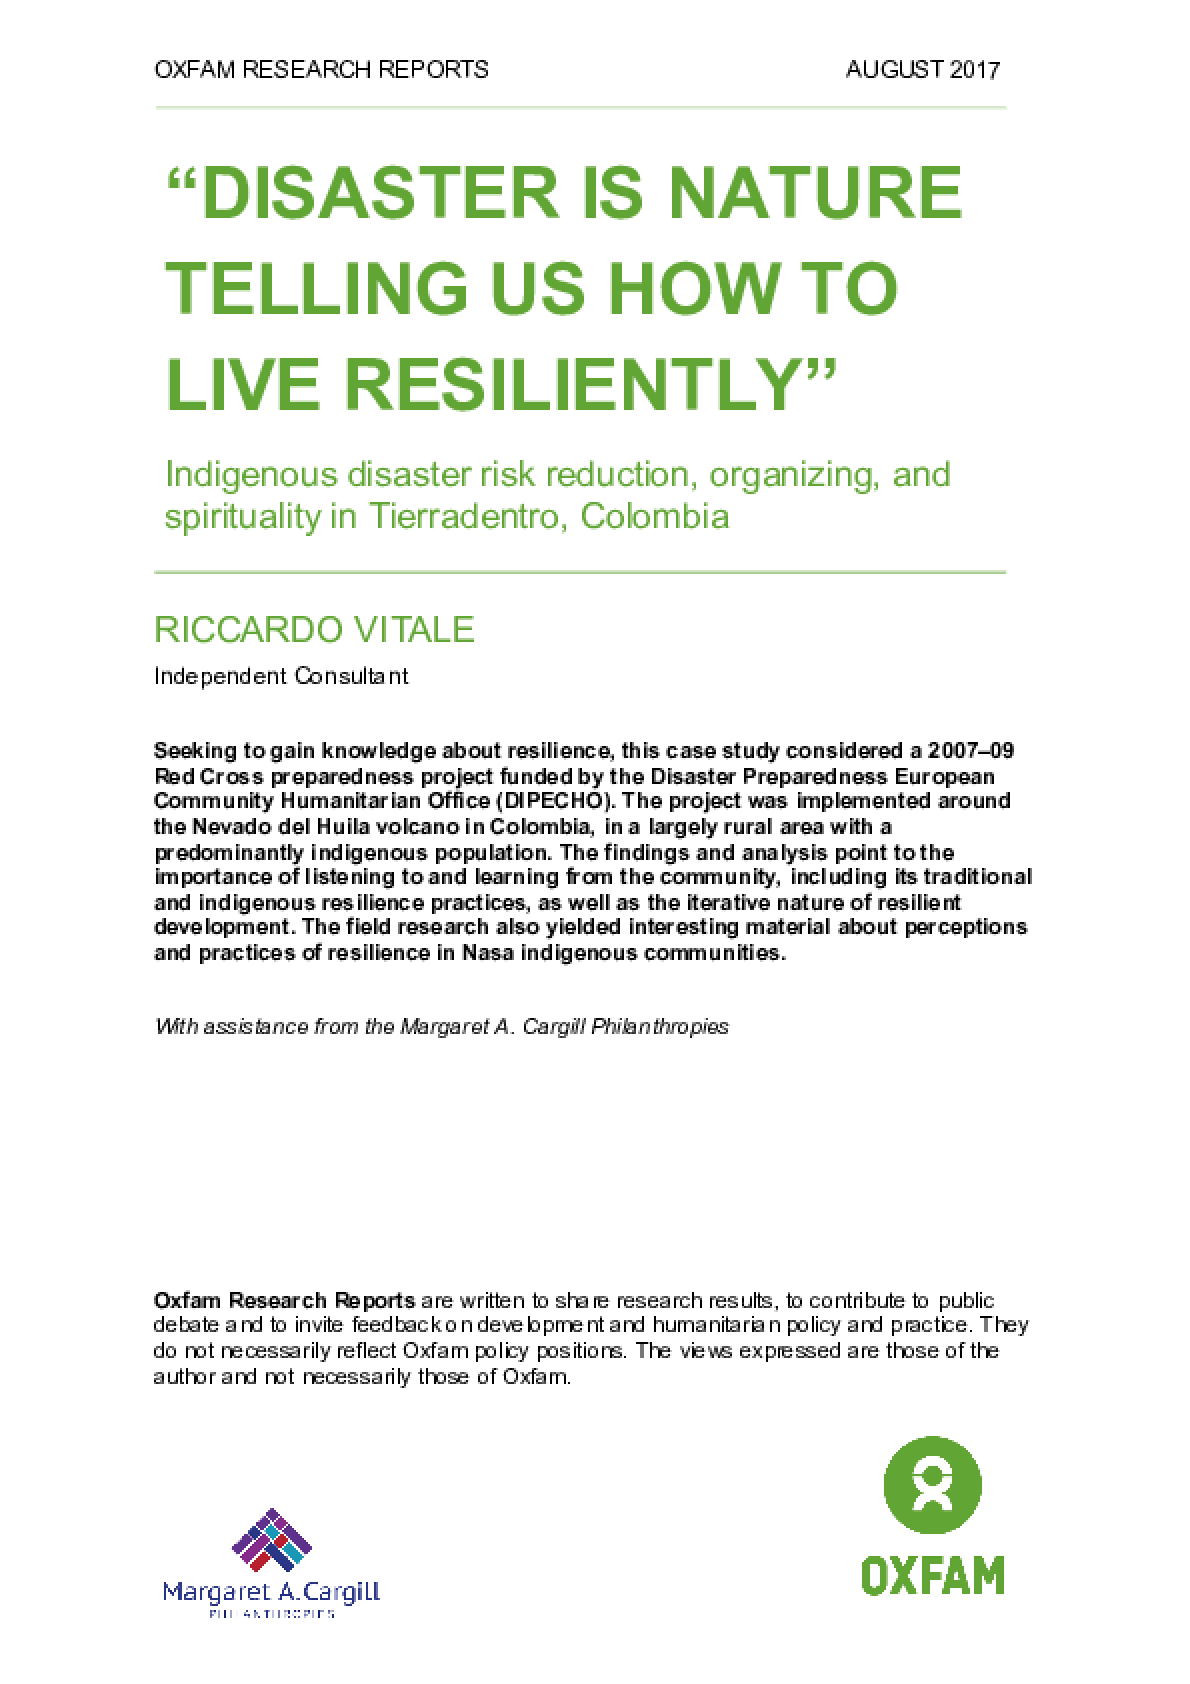 """Disaster is Nature Telling Us how to Live Resiliently"": Indigenous disaster risk reduction, organizing, and spirituality in Tierradentro, Colombia"